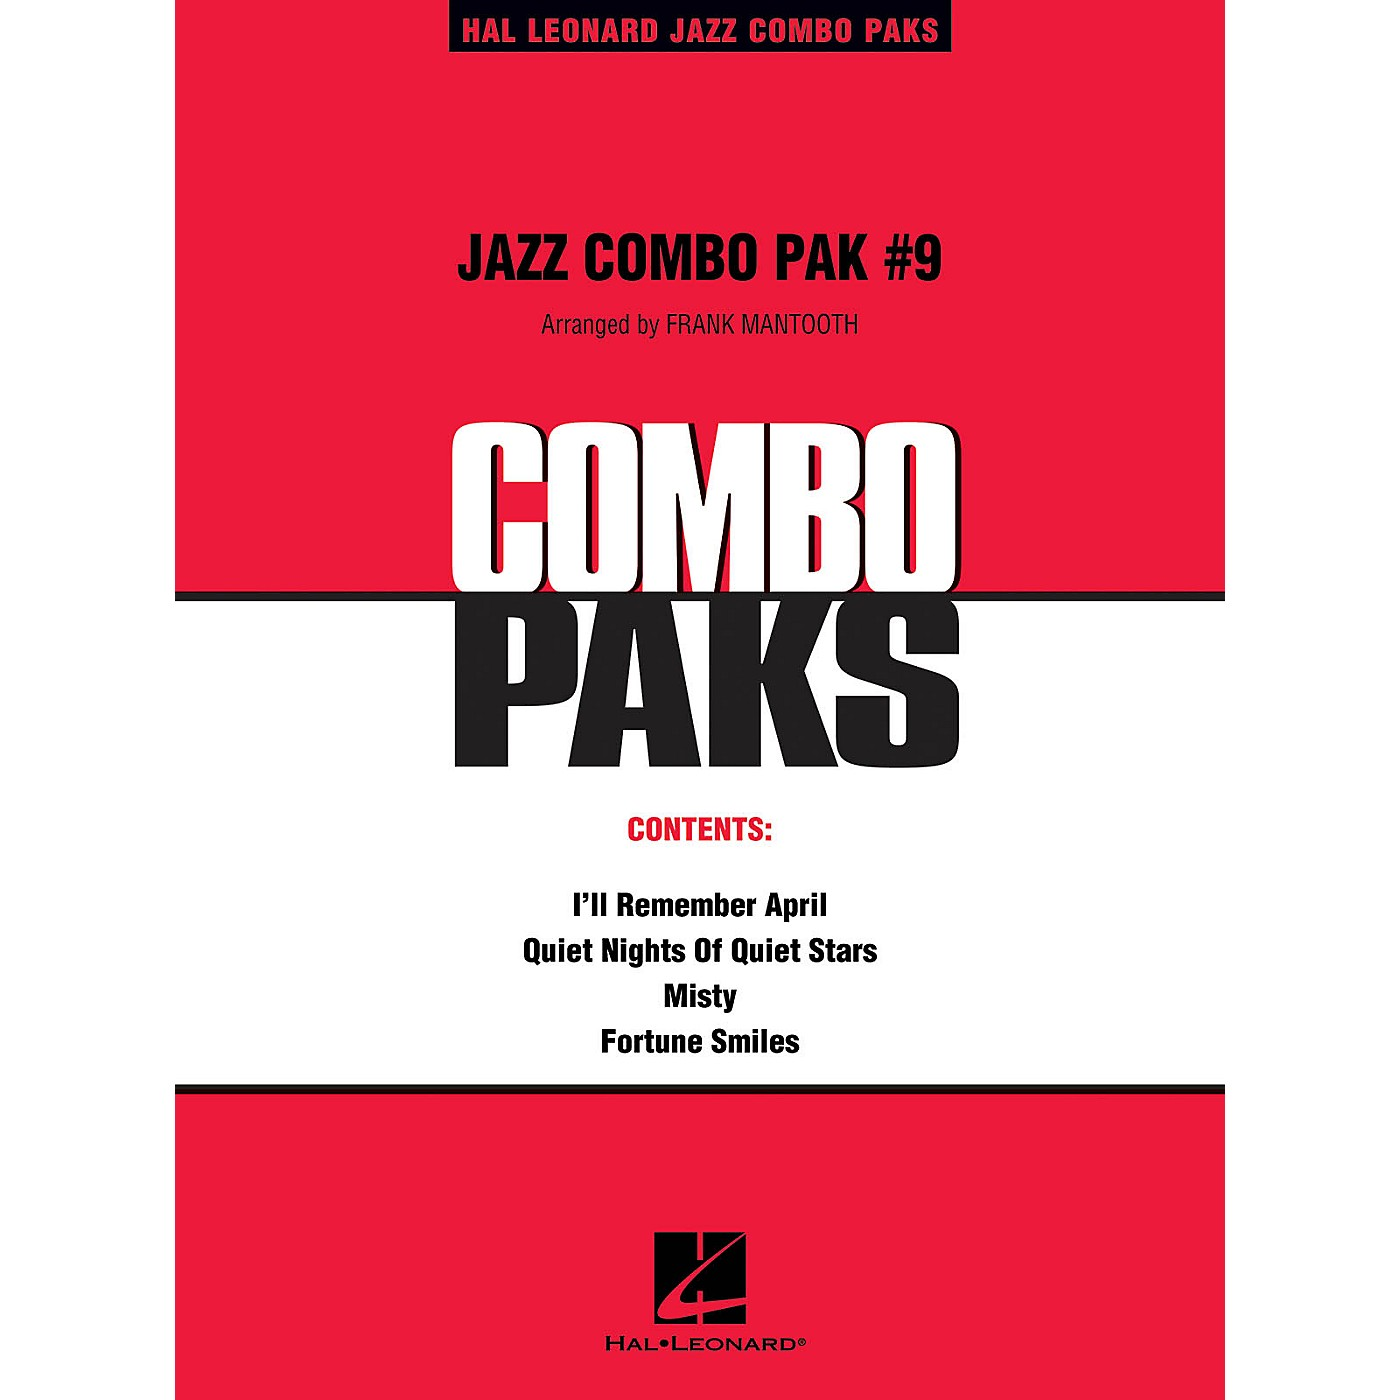 Hal Leonard Jazz Combo Pak #9 (with audio download) Jazz Band Level 3 Arranged by Frank Mantooth thumbnail